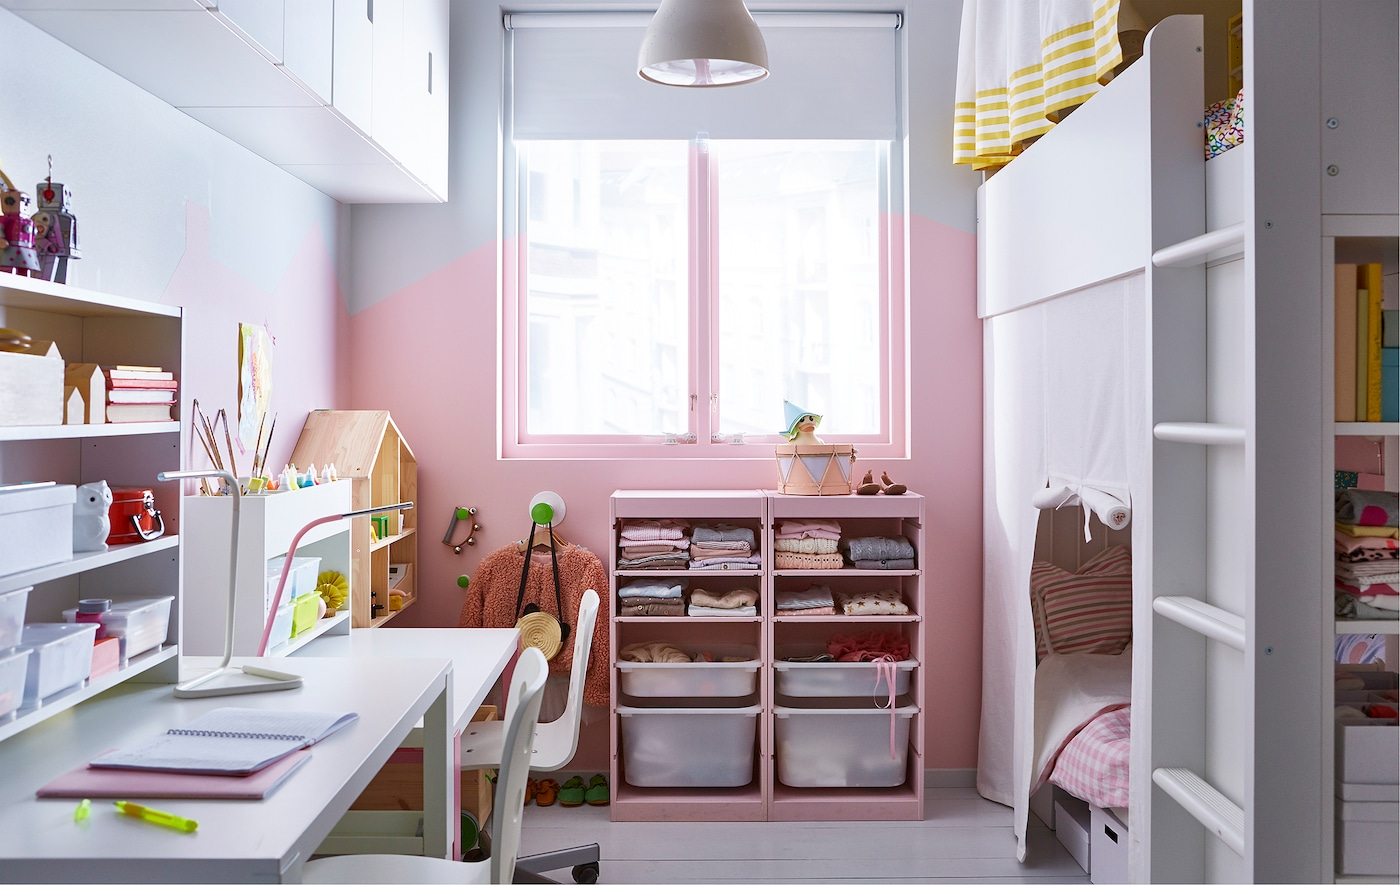 A shared kids' room with a loft bed, storage and two desks.